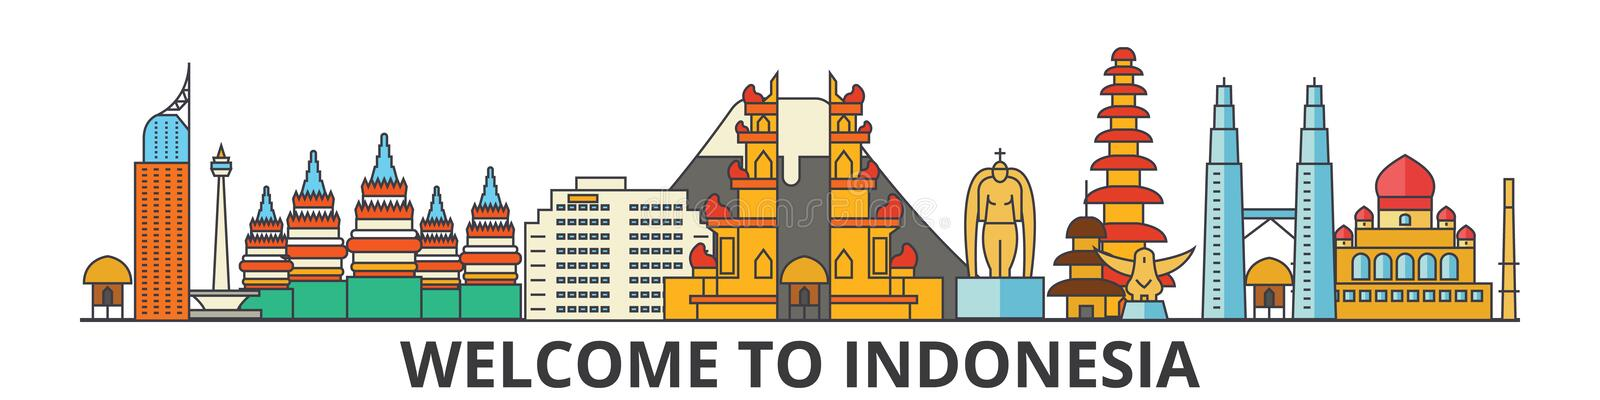 Indonesia outline skyline, indonesian flat thin line icons, landmarks, illustrations. Indonesia cityscape, indonesian. Vector travel city banner. Urban royalty free illustration